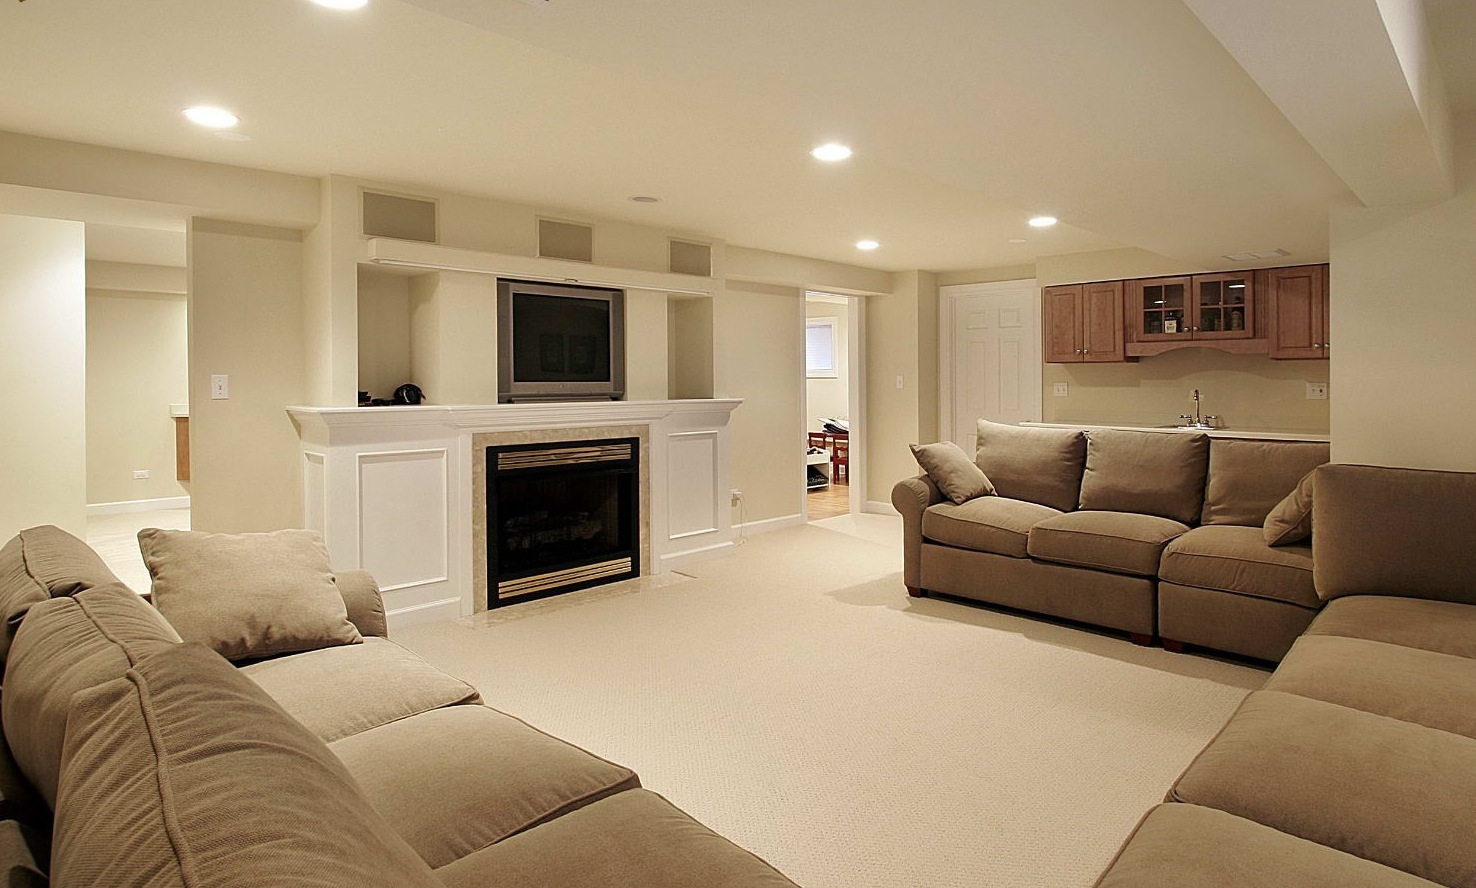 Basements Renovations Ideas. Basements Renovations Ideas F